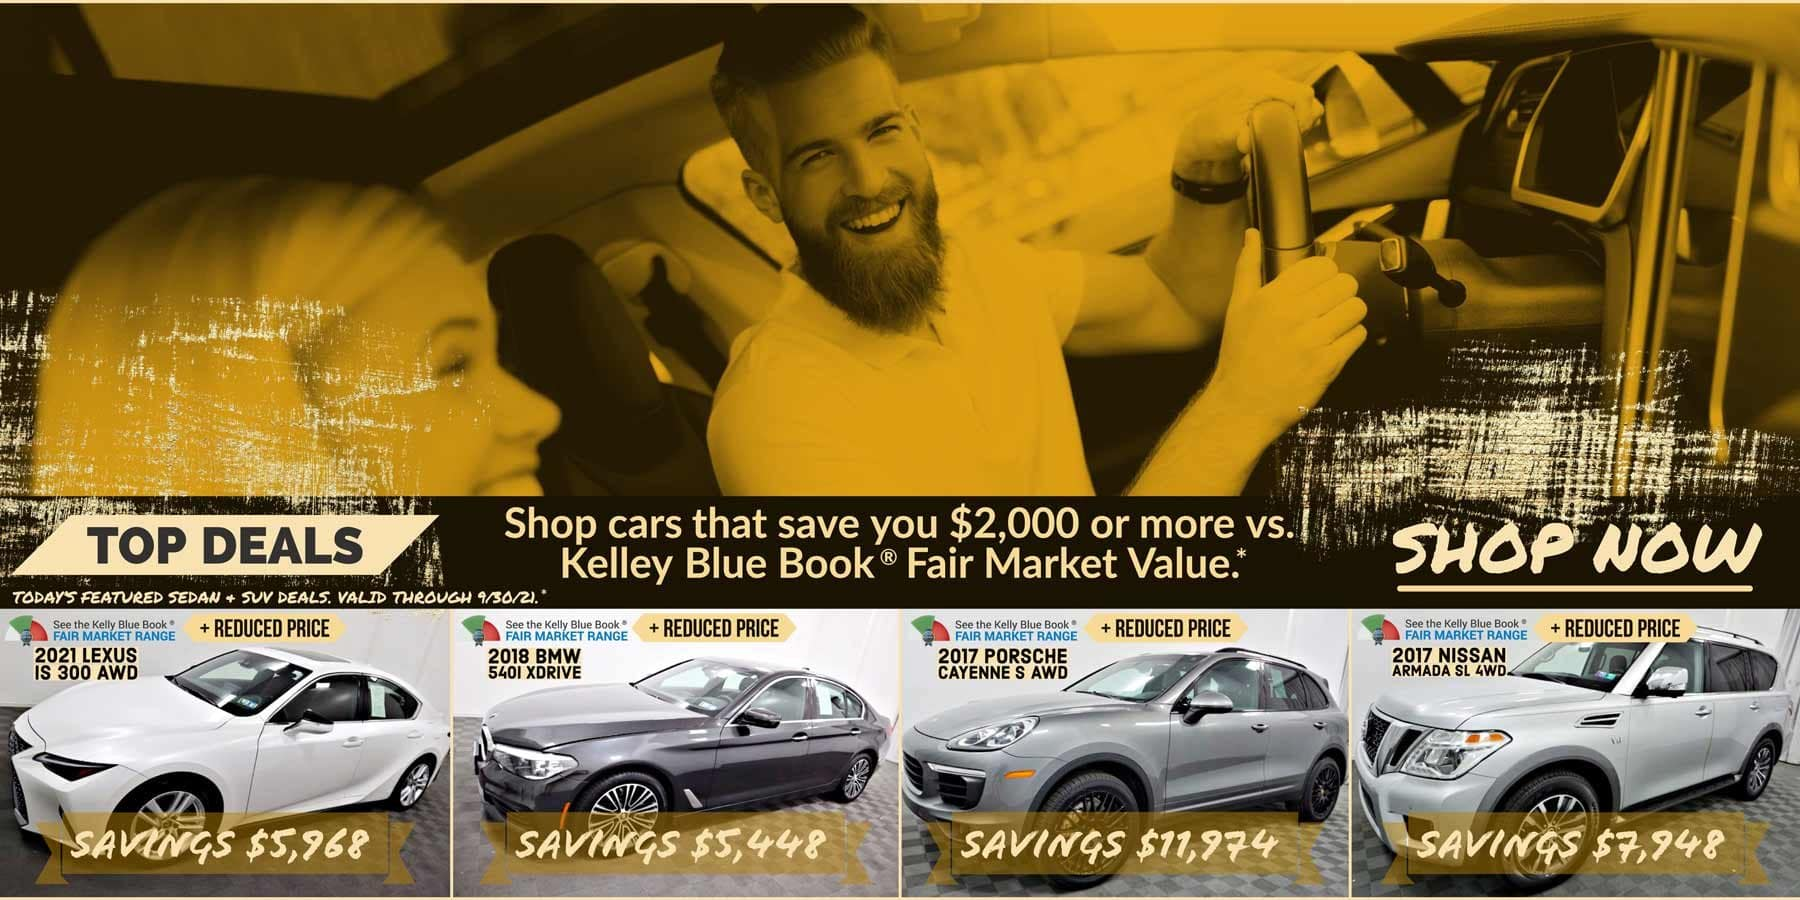 Today's featured Sedan & SUV for sale deals. Valid through 9/30/21.